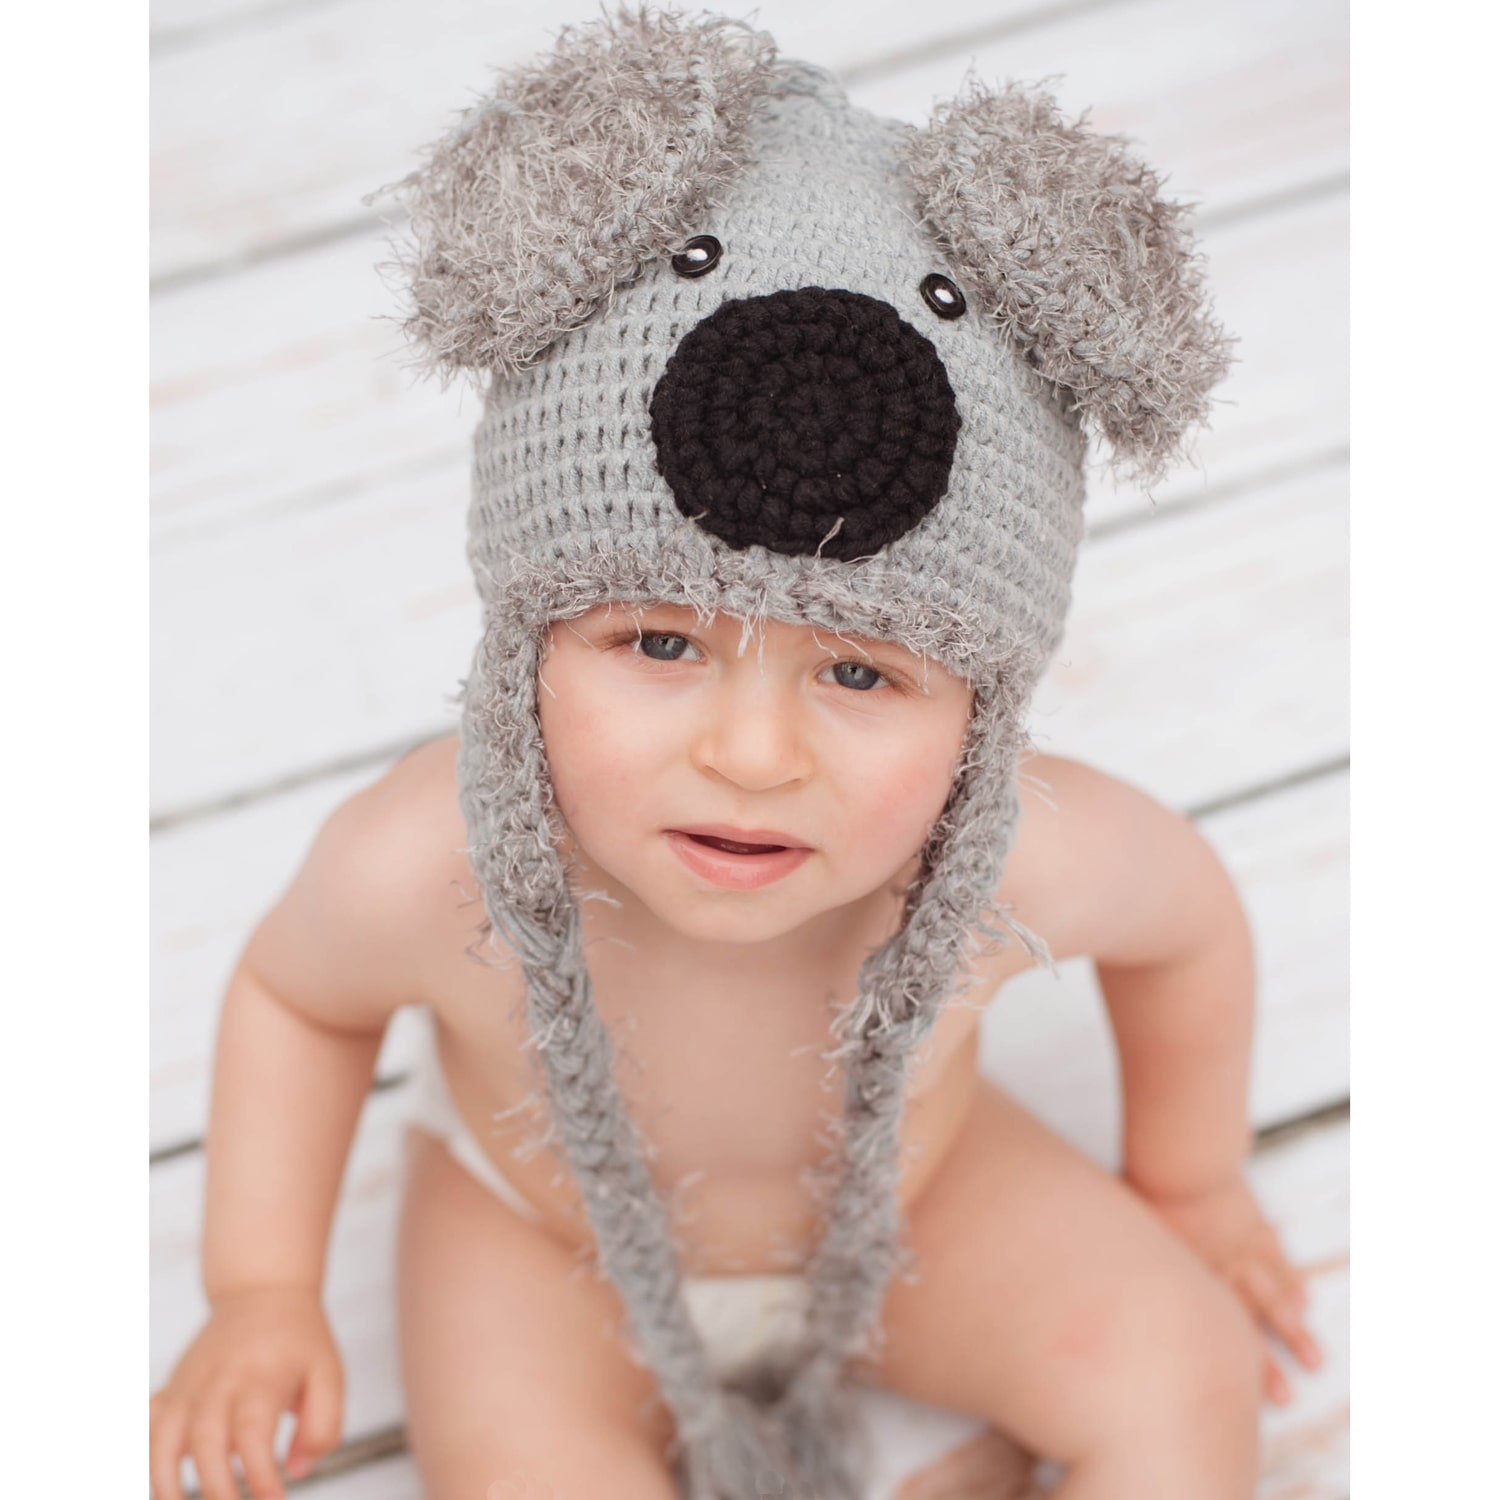 Knitnut By JL Handmade Baby's Koala Bear Knit Hat